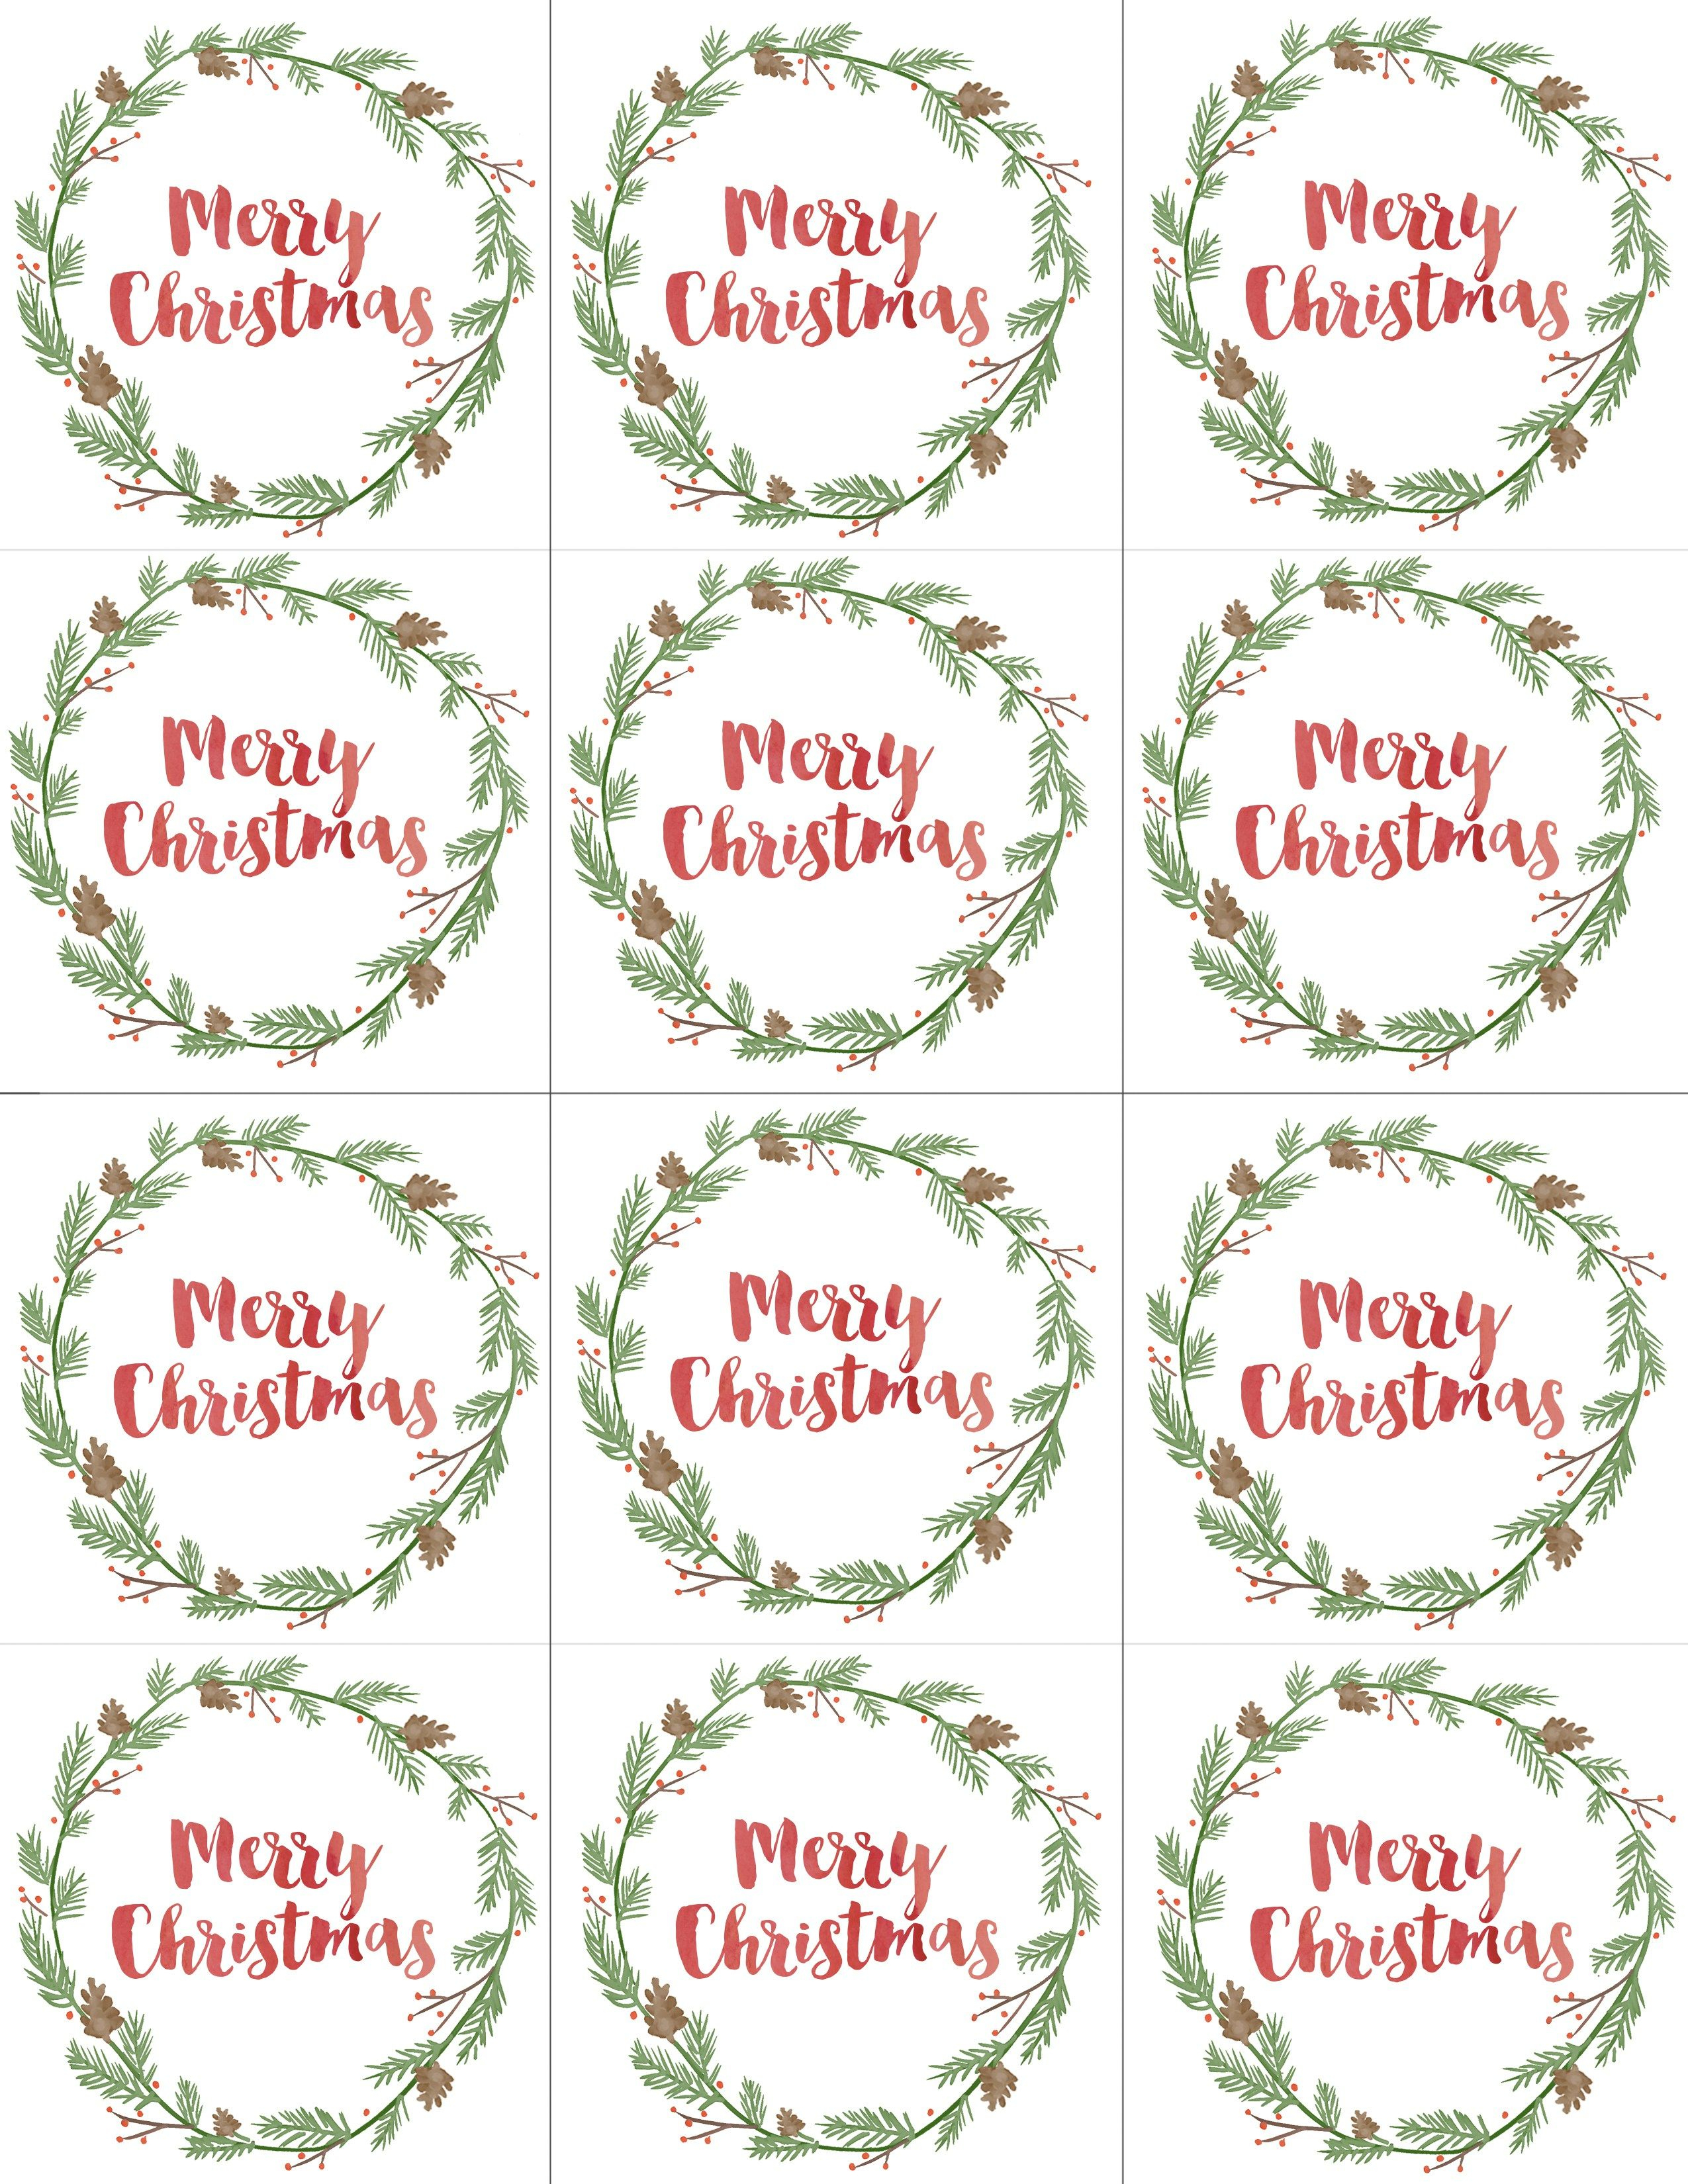 Hand Painted Gift Tags Free Printable | Christmas | Christmas Gift - Free Printable Angel Gift Tags